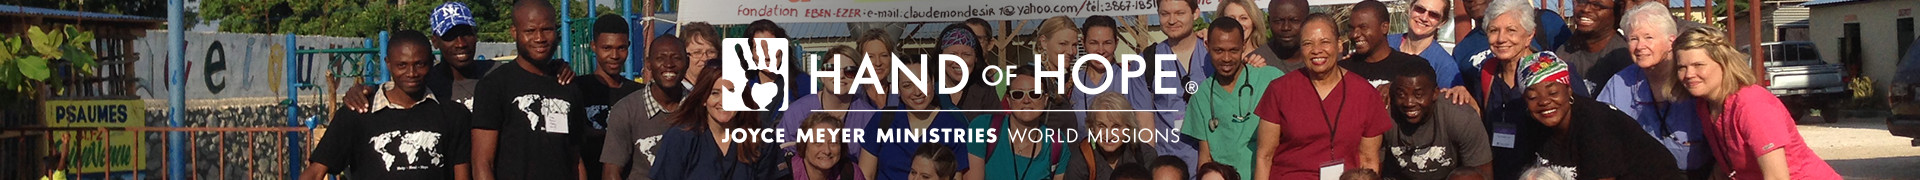 Hand of Hope Volunteers